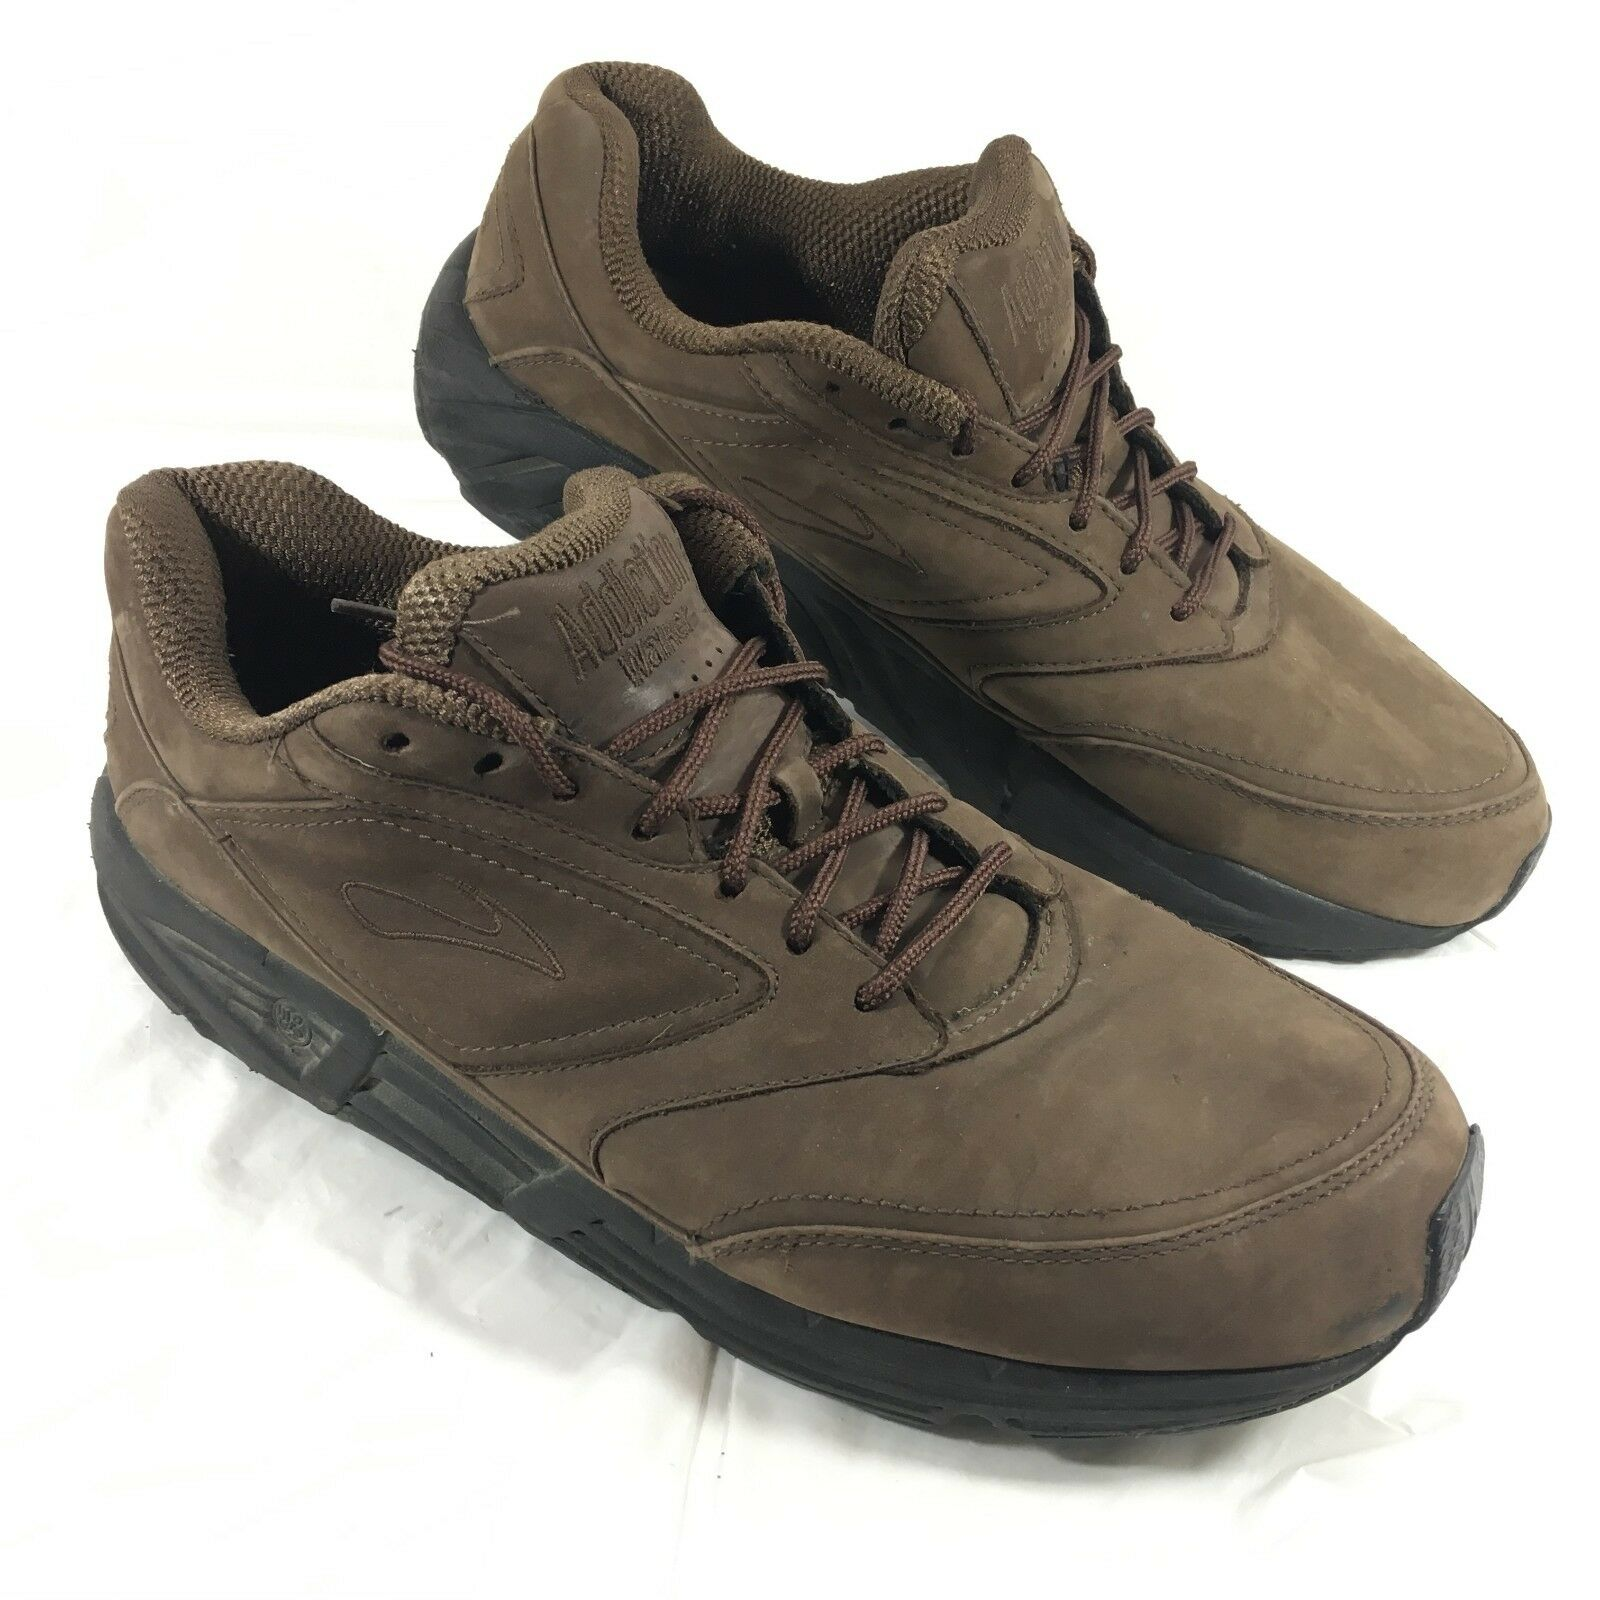 Men's used Brooks Addiction Walker Comfort shoes Brown leather Sz 14 M